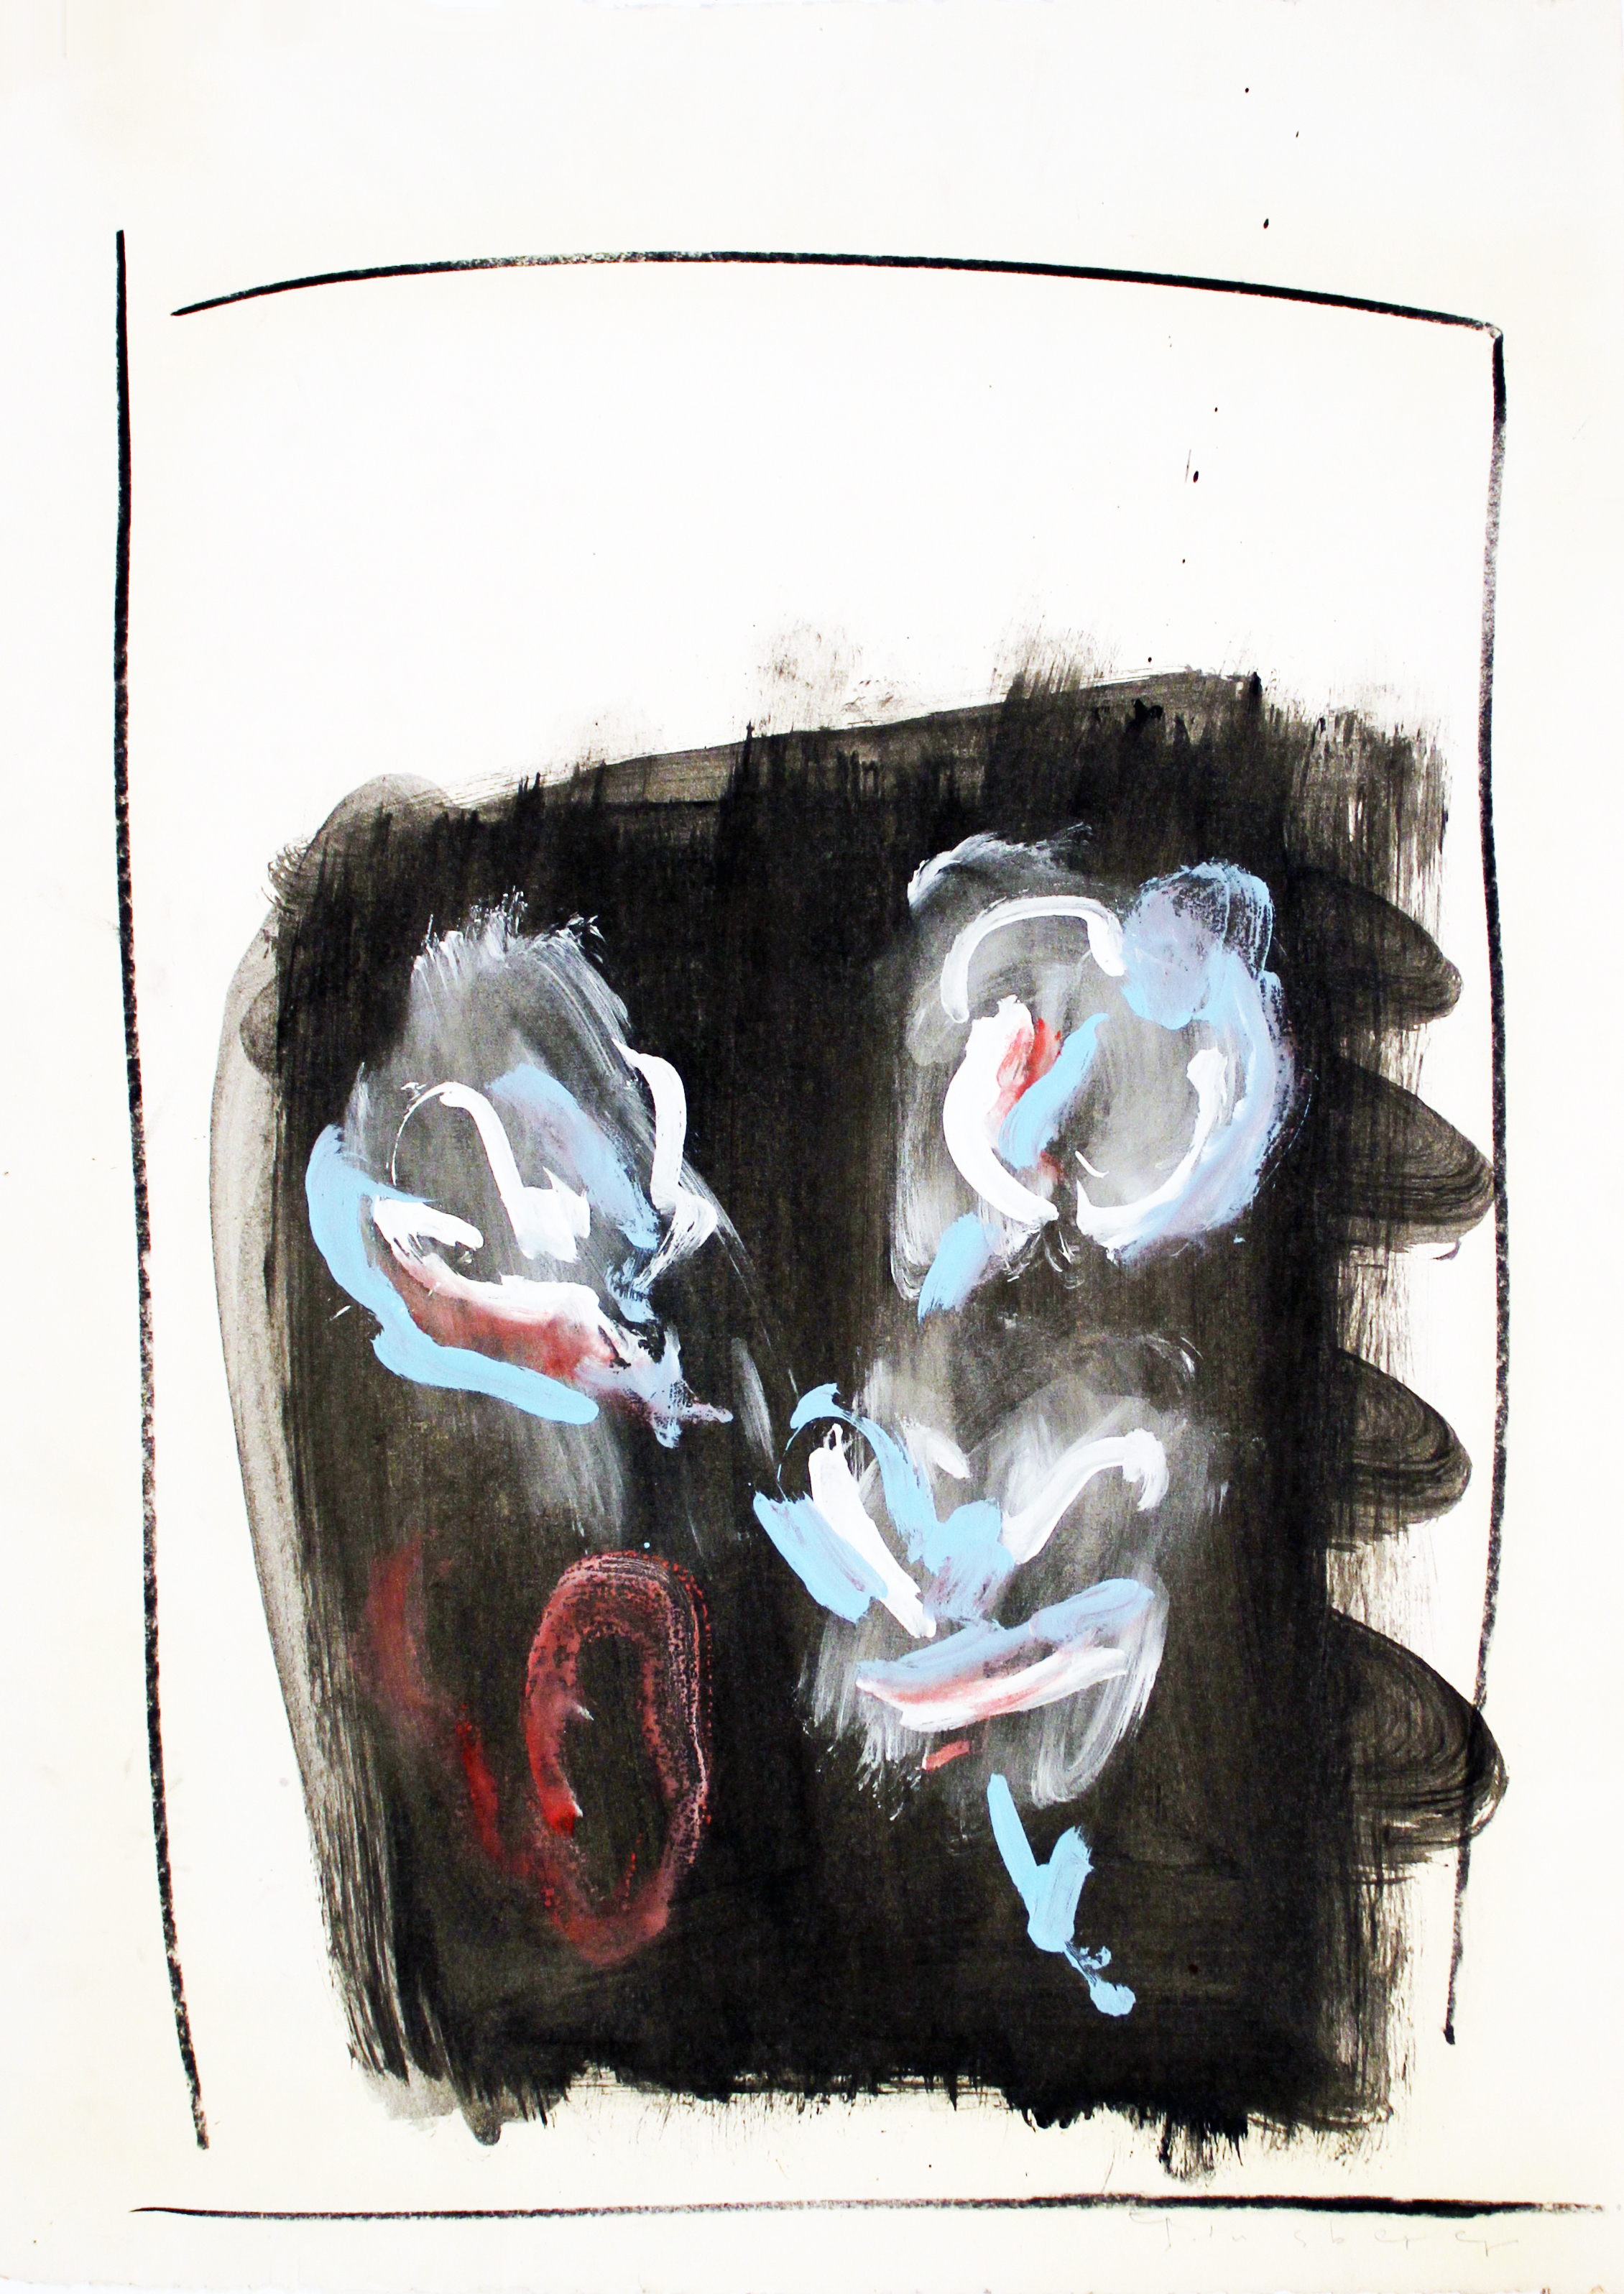 SQUARE FACE  Mixed Media on Paper 30 x 22 inches (76 x 56 cm)